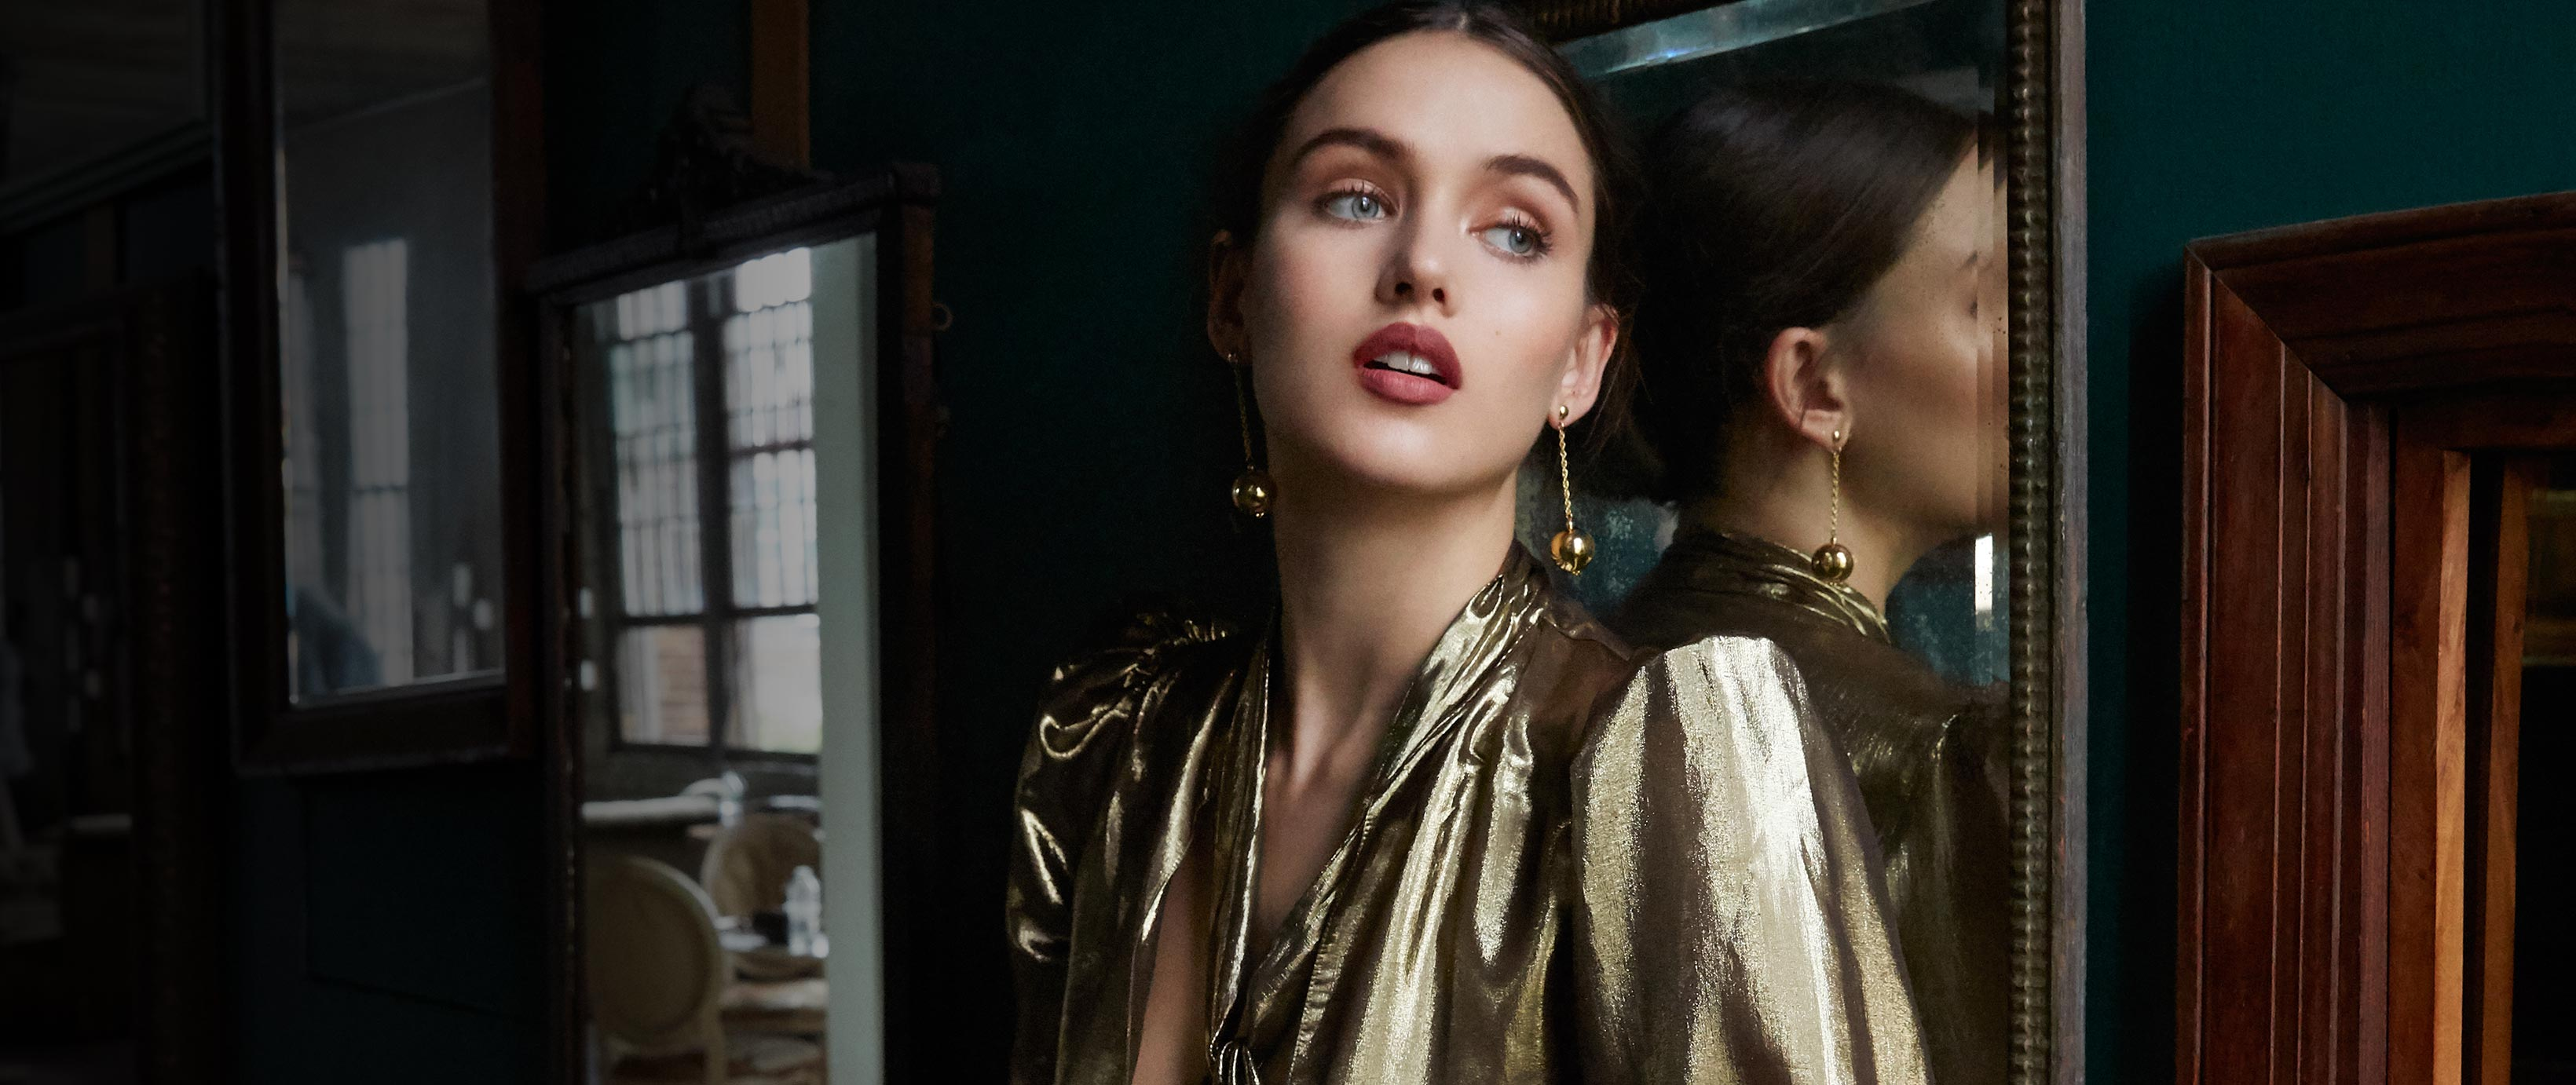 Shine Factor: Metallics feel fresh and elevated in luxe fabrics and sophisticated silhouettes